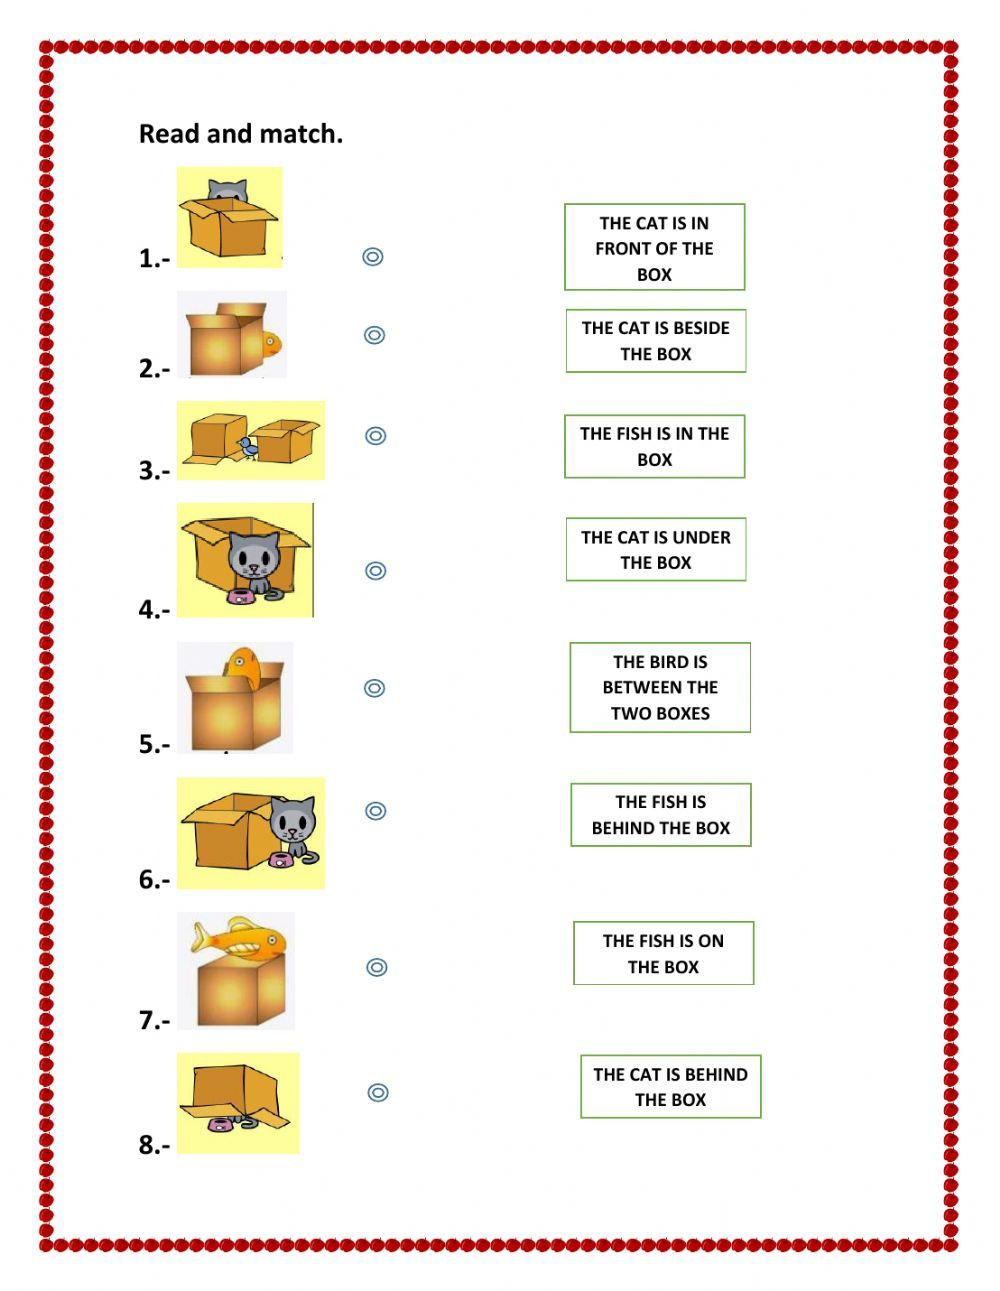 Preposition Worksheets for Grade 1 Prepositions Of Place Interactive and Able Worksheet